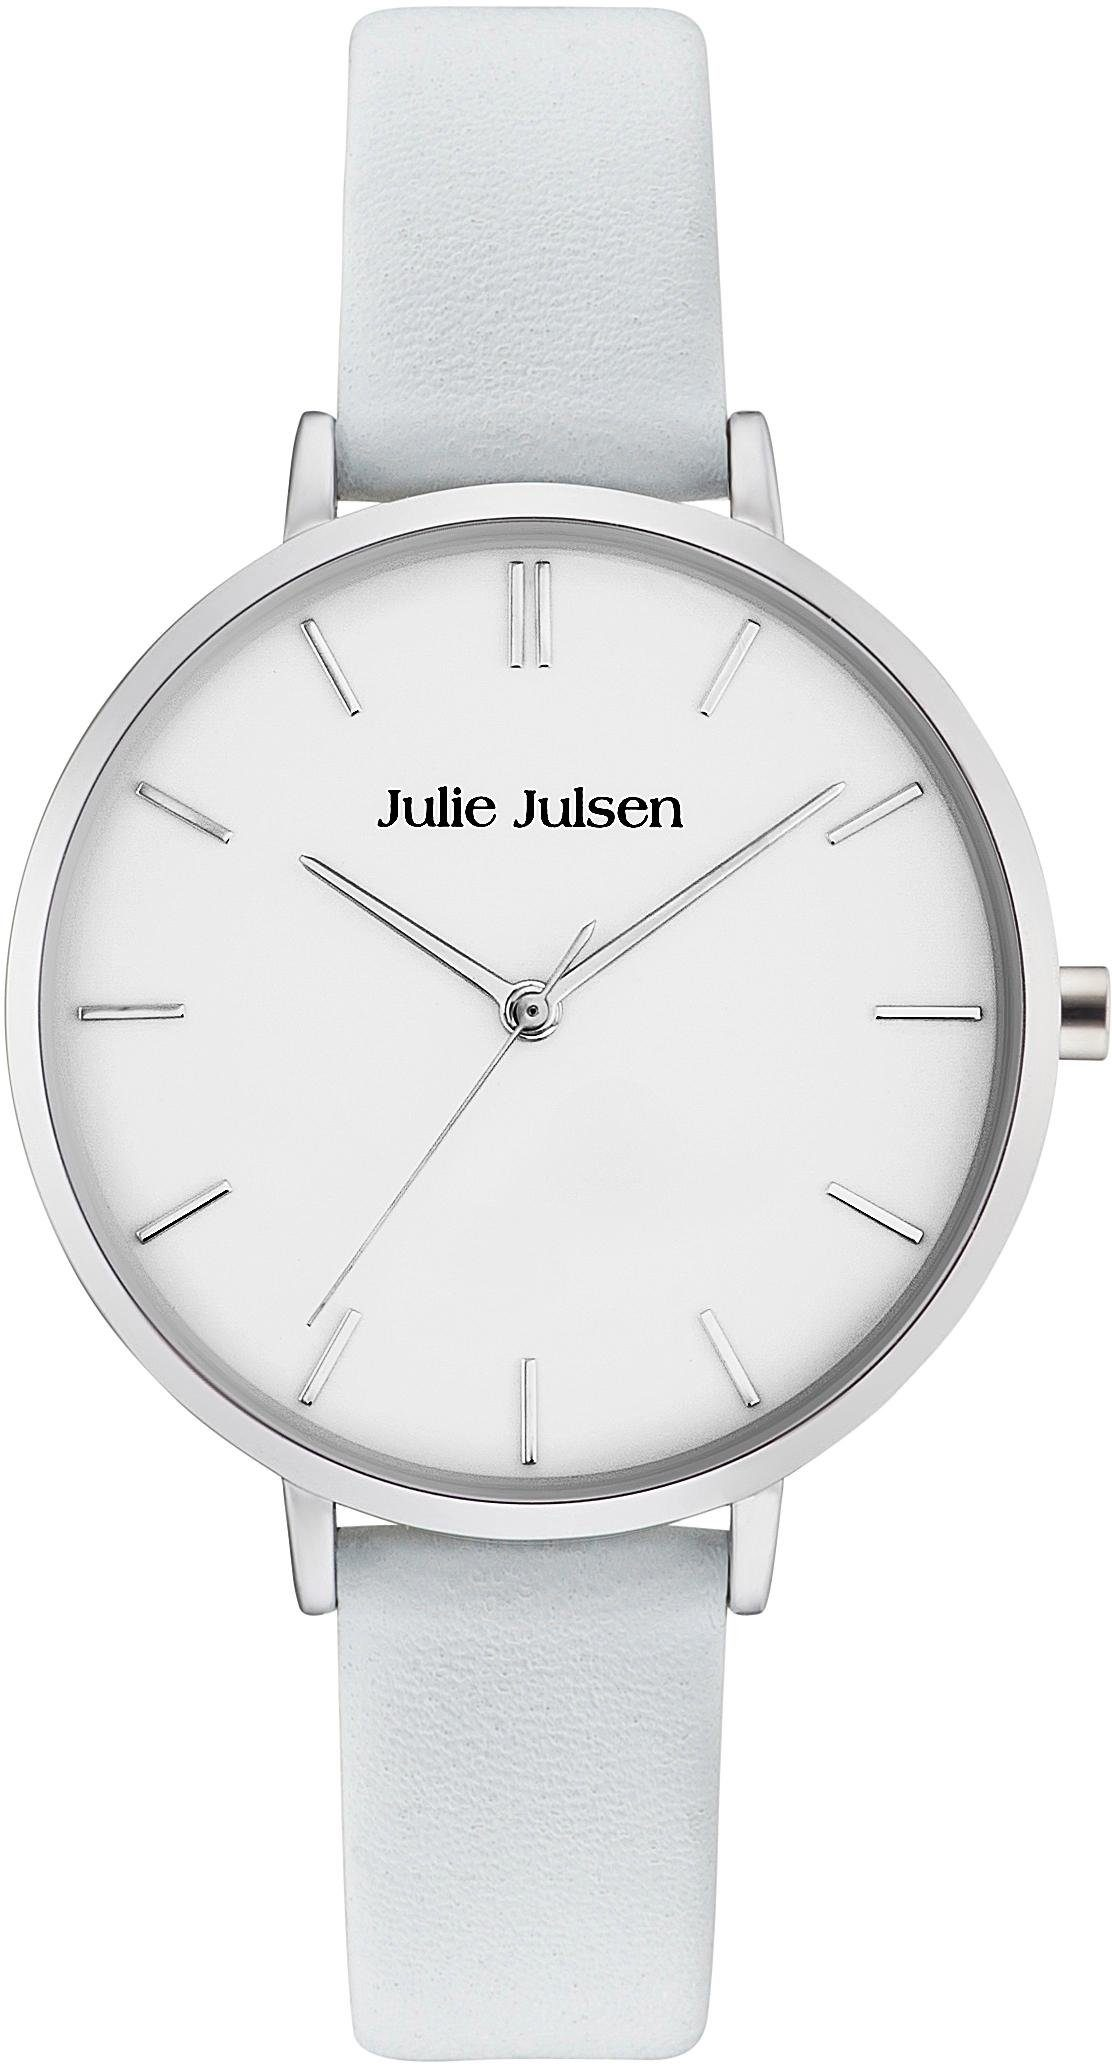 Julie Julsen Quarzuhr »Pure Silver Light Blue, JJW10SL-4«